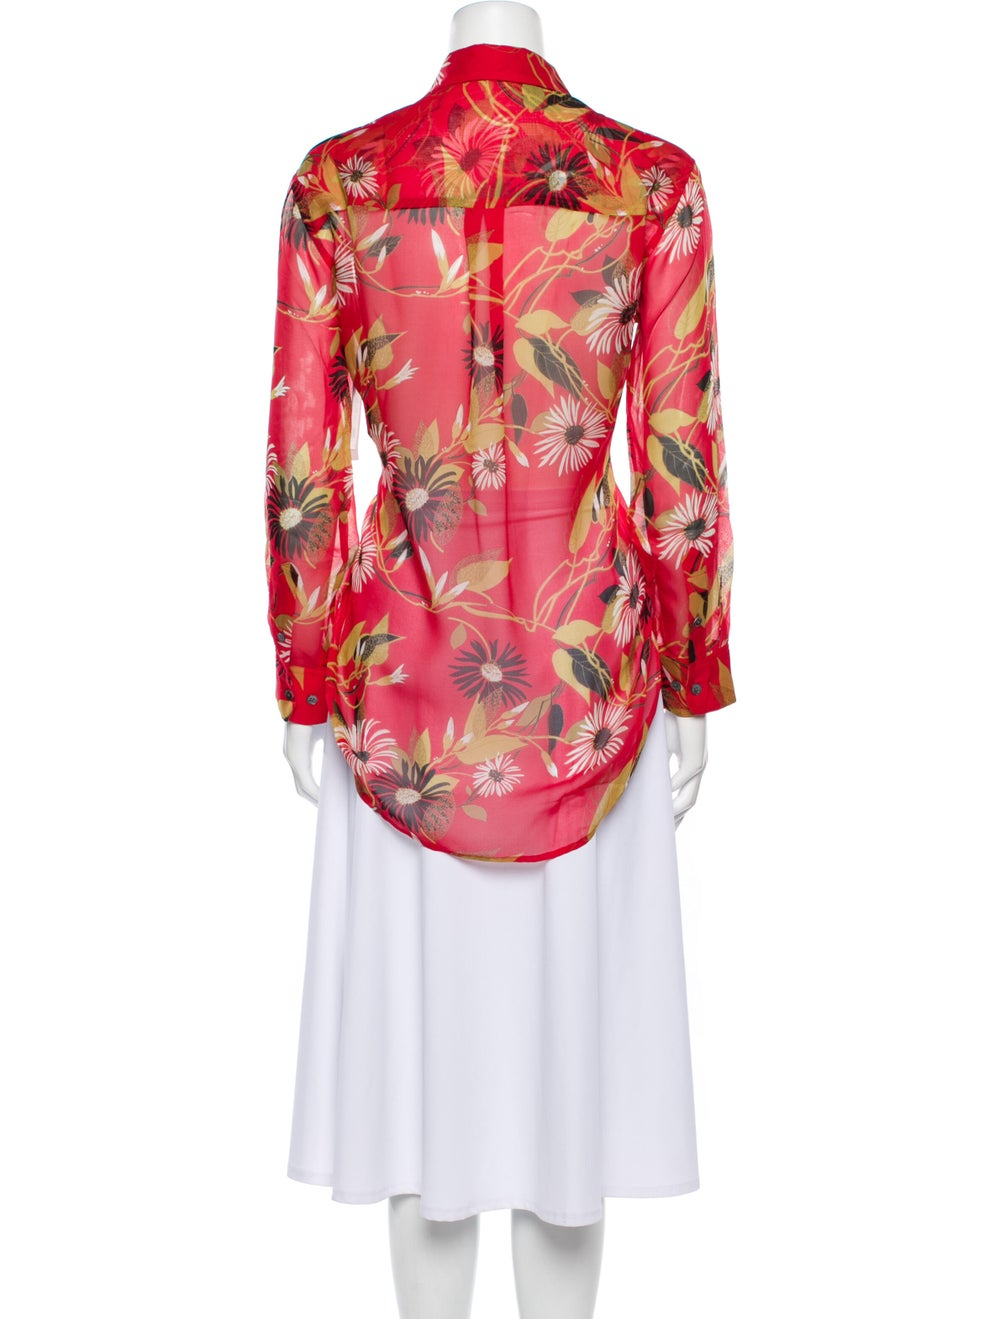 Equipment Silk Floral Print Button-Up Top Red - image 3